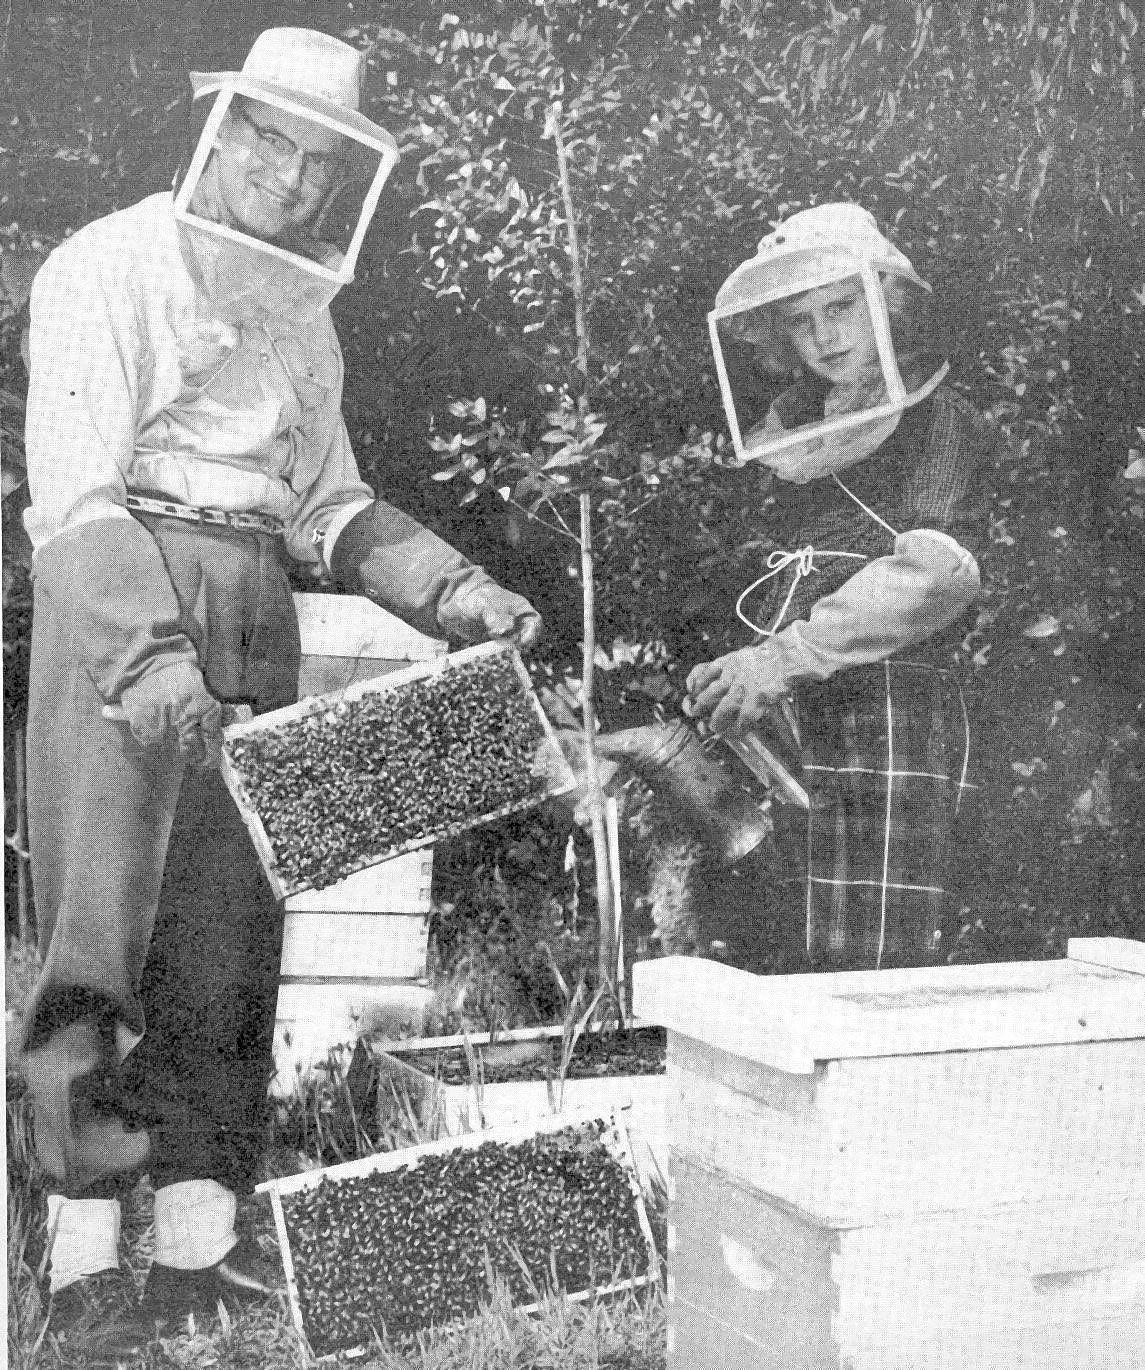 Gene Grabbe and his daughter, Willow, tend to beehives in their Los Amigos Street garden in April 1954. Willow Grabbe, then 9 and a fourth-grade student at La Cañada Elementary School, smokes the bees in the frame held by her father.